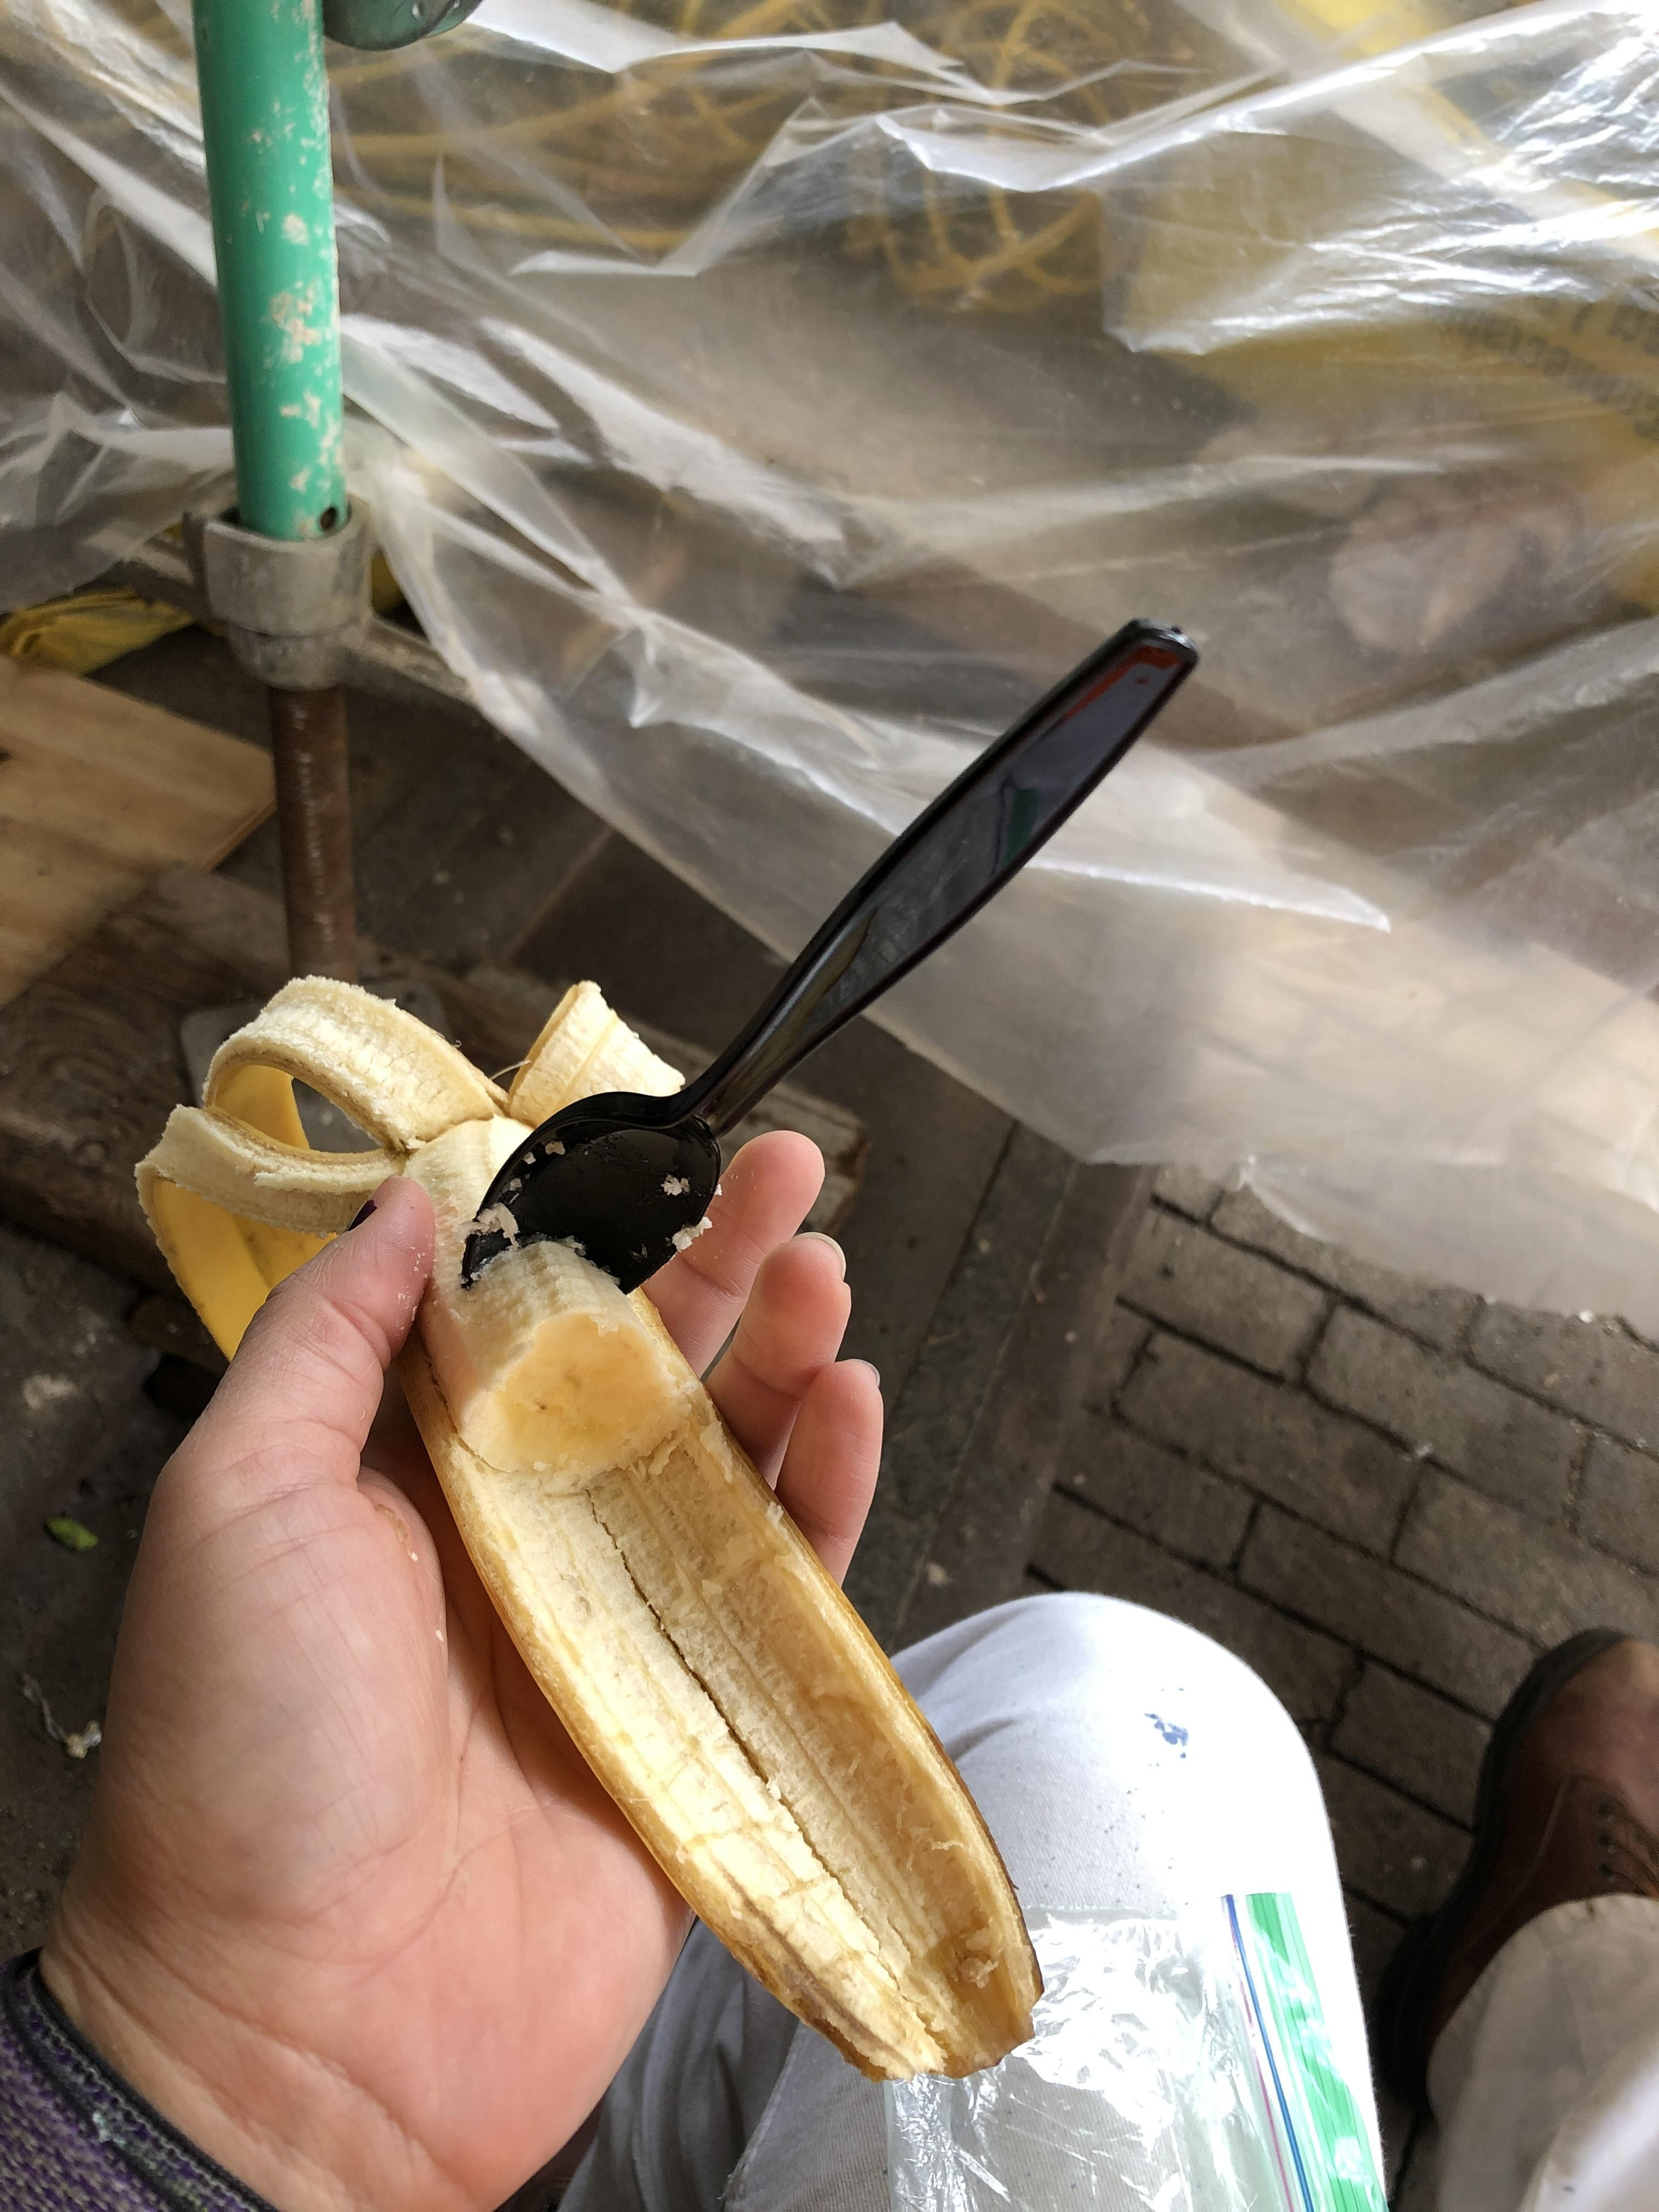 I'm a woman in construction, this is how I choose to eat bananas